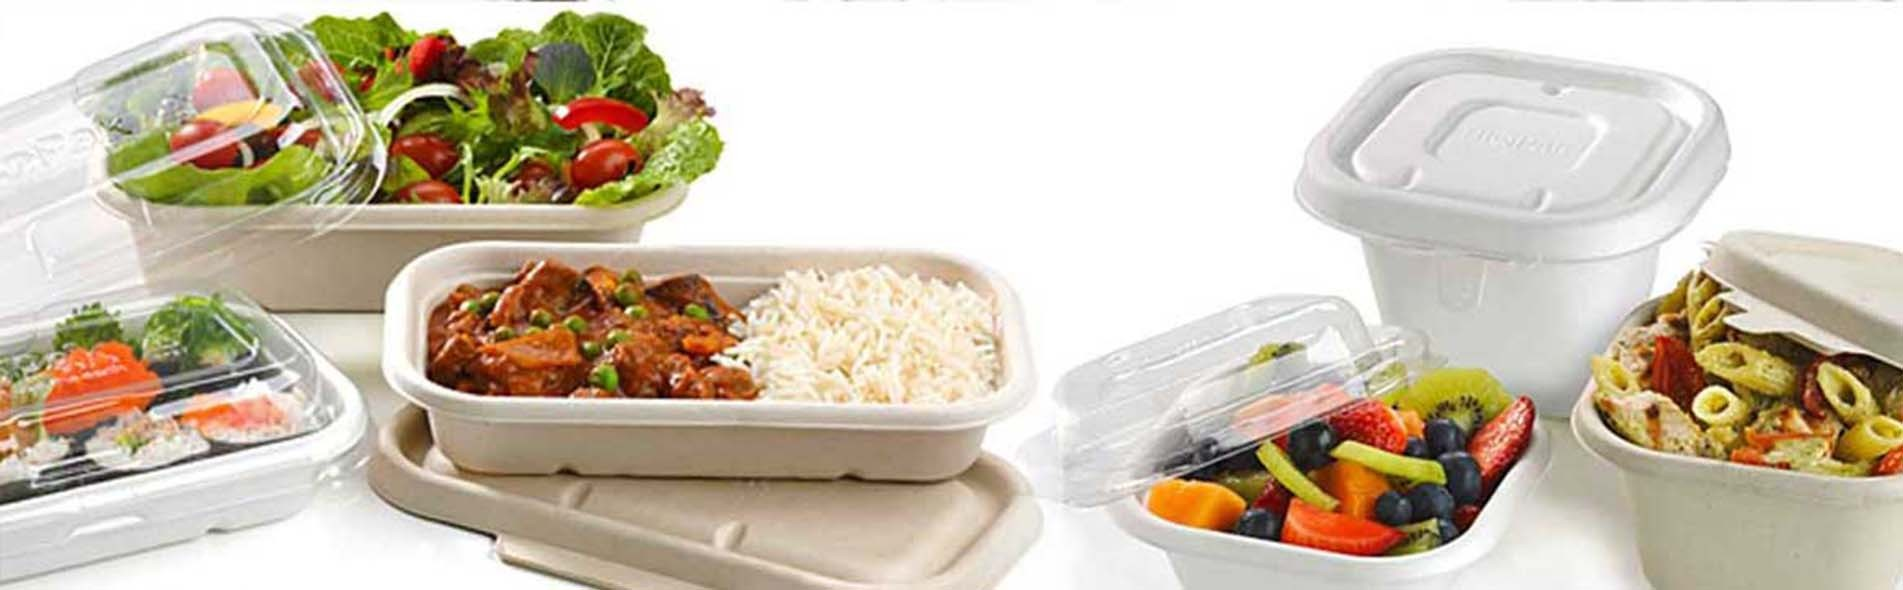 Sugarcane Takeaway Lunch Box